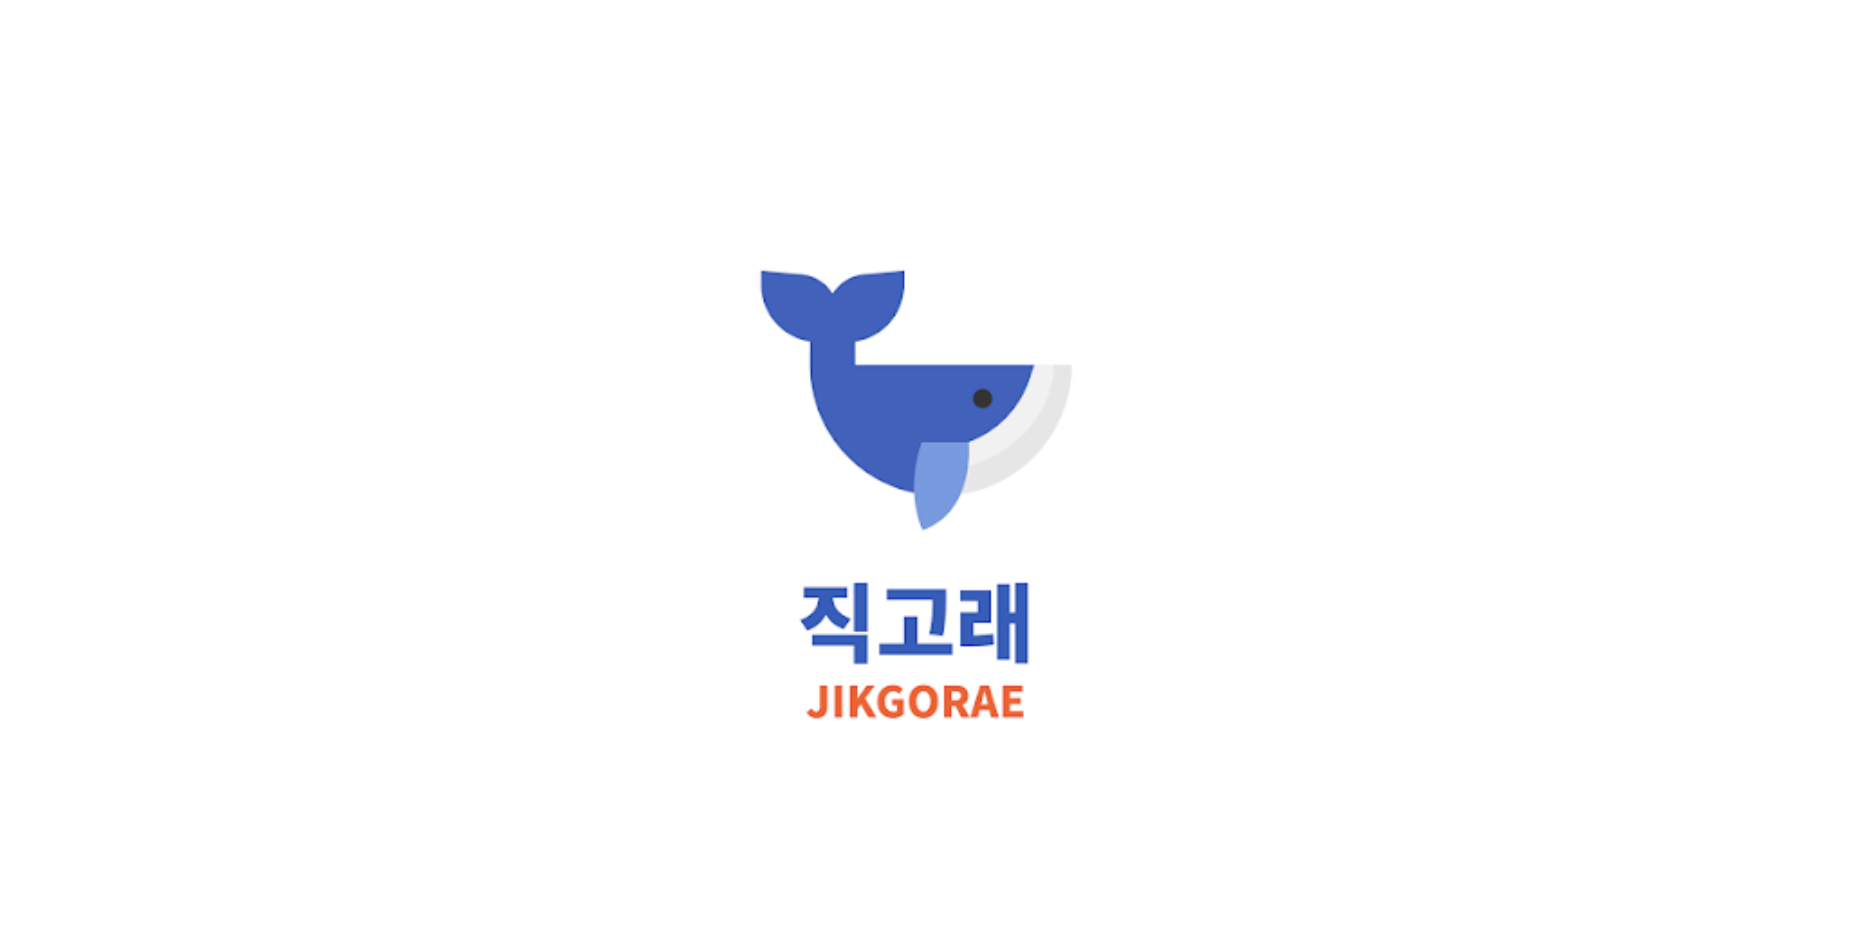 https://github.com/jnsorn/2020-seller-lee-company/raw/develop/images/graphic.jpg